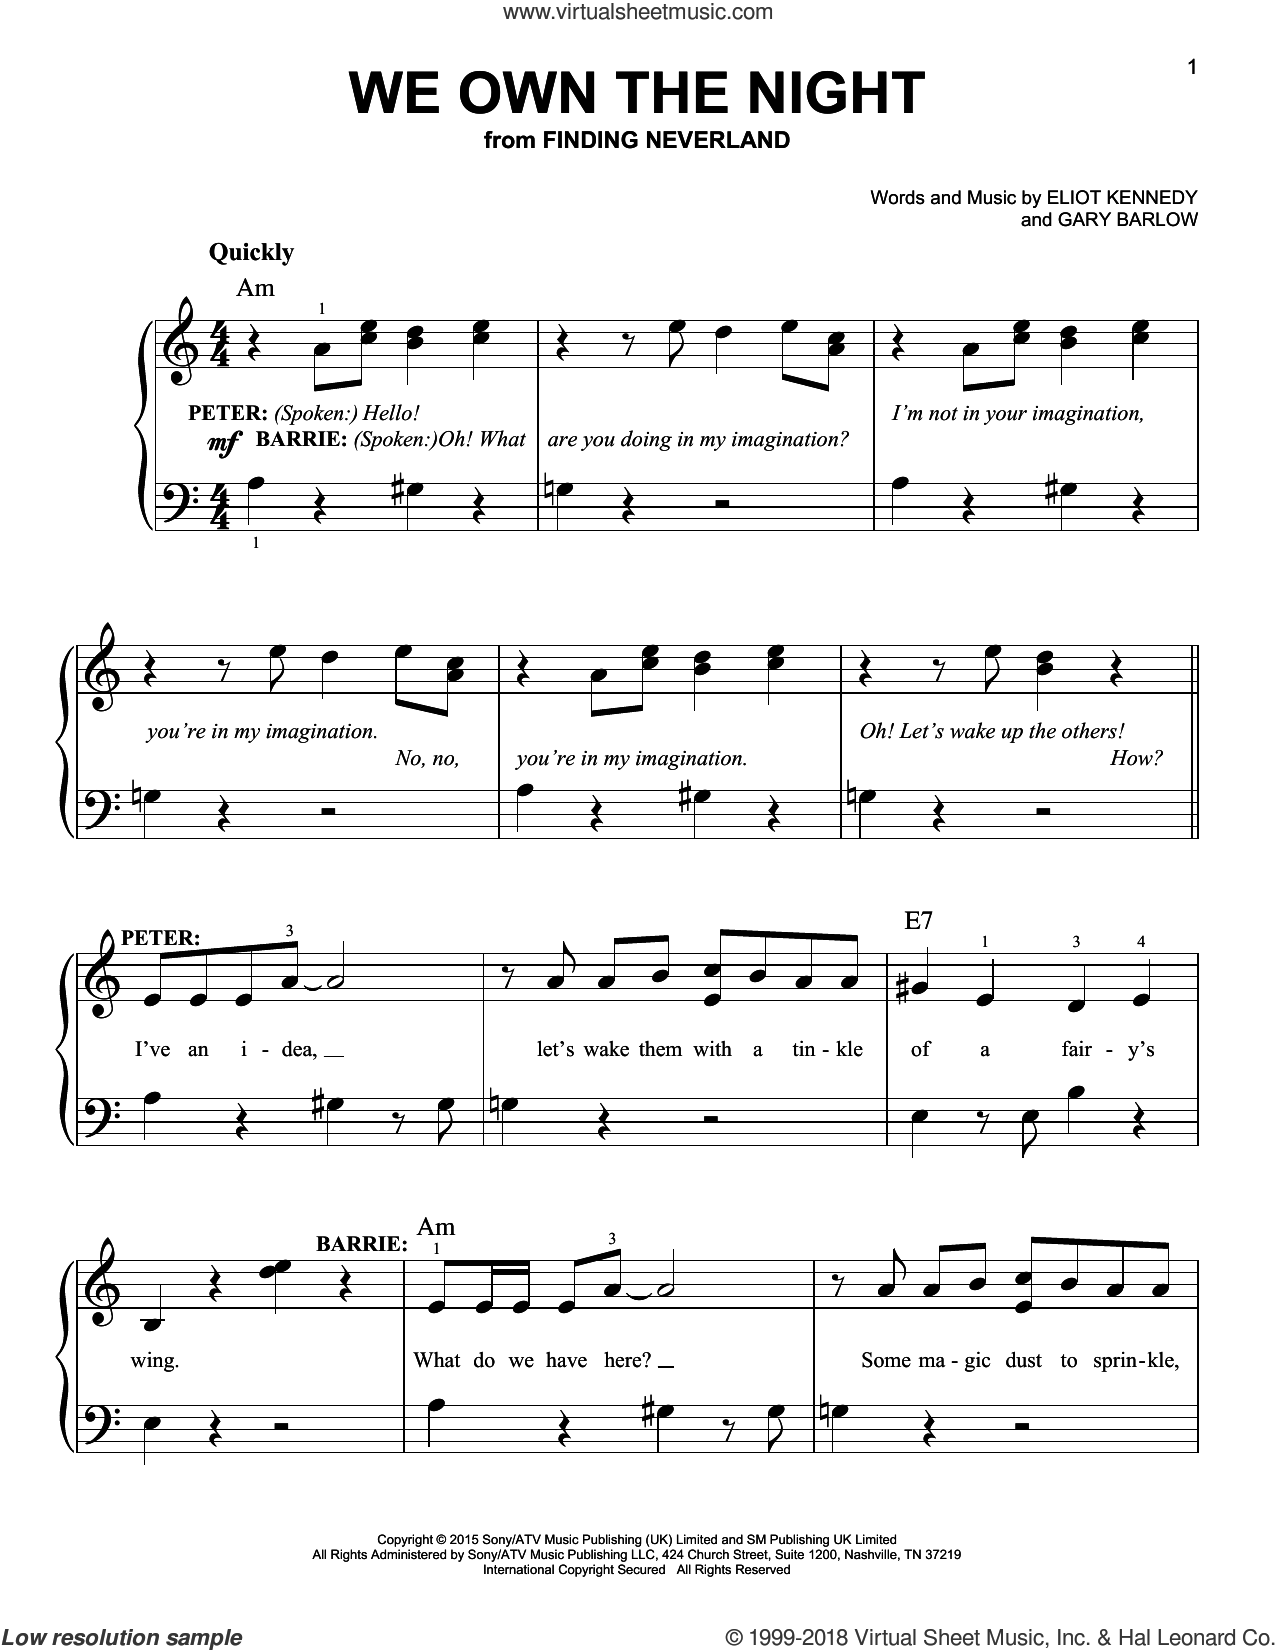 We Own The Night sheet music for piano solo by Gary Barlow & Eliot Kennedy, Eliot Kennedy and Gary Barlow, easy skill level